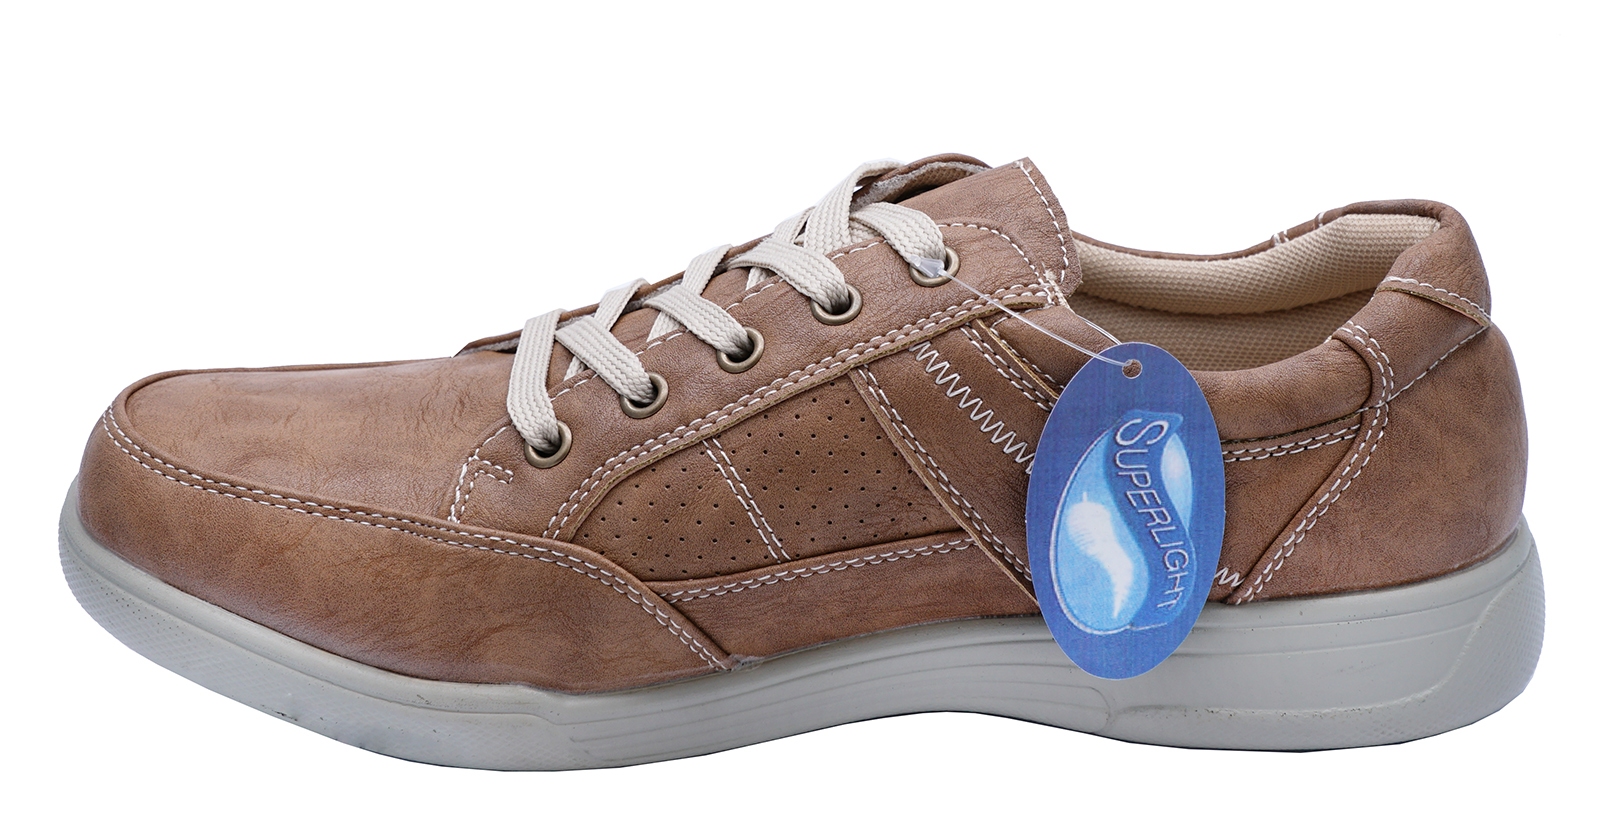 thumbnail 6 - MENS-TAN-LACE-UP-COMFY-LIGHTWEIGHT-SMART-CASUAL-WALKING-TRAINER-SHOES-UK-6-12